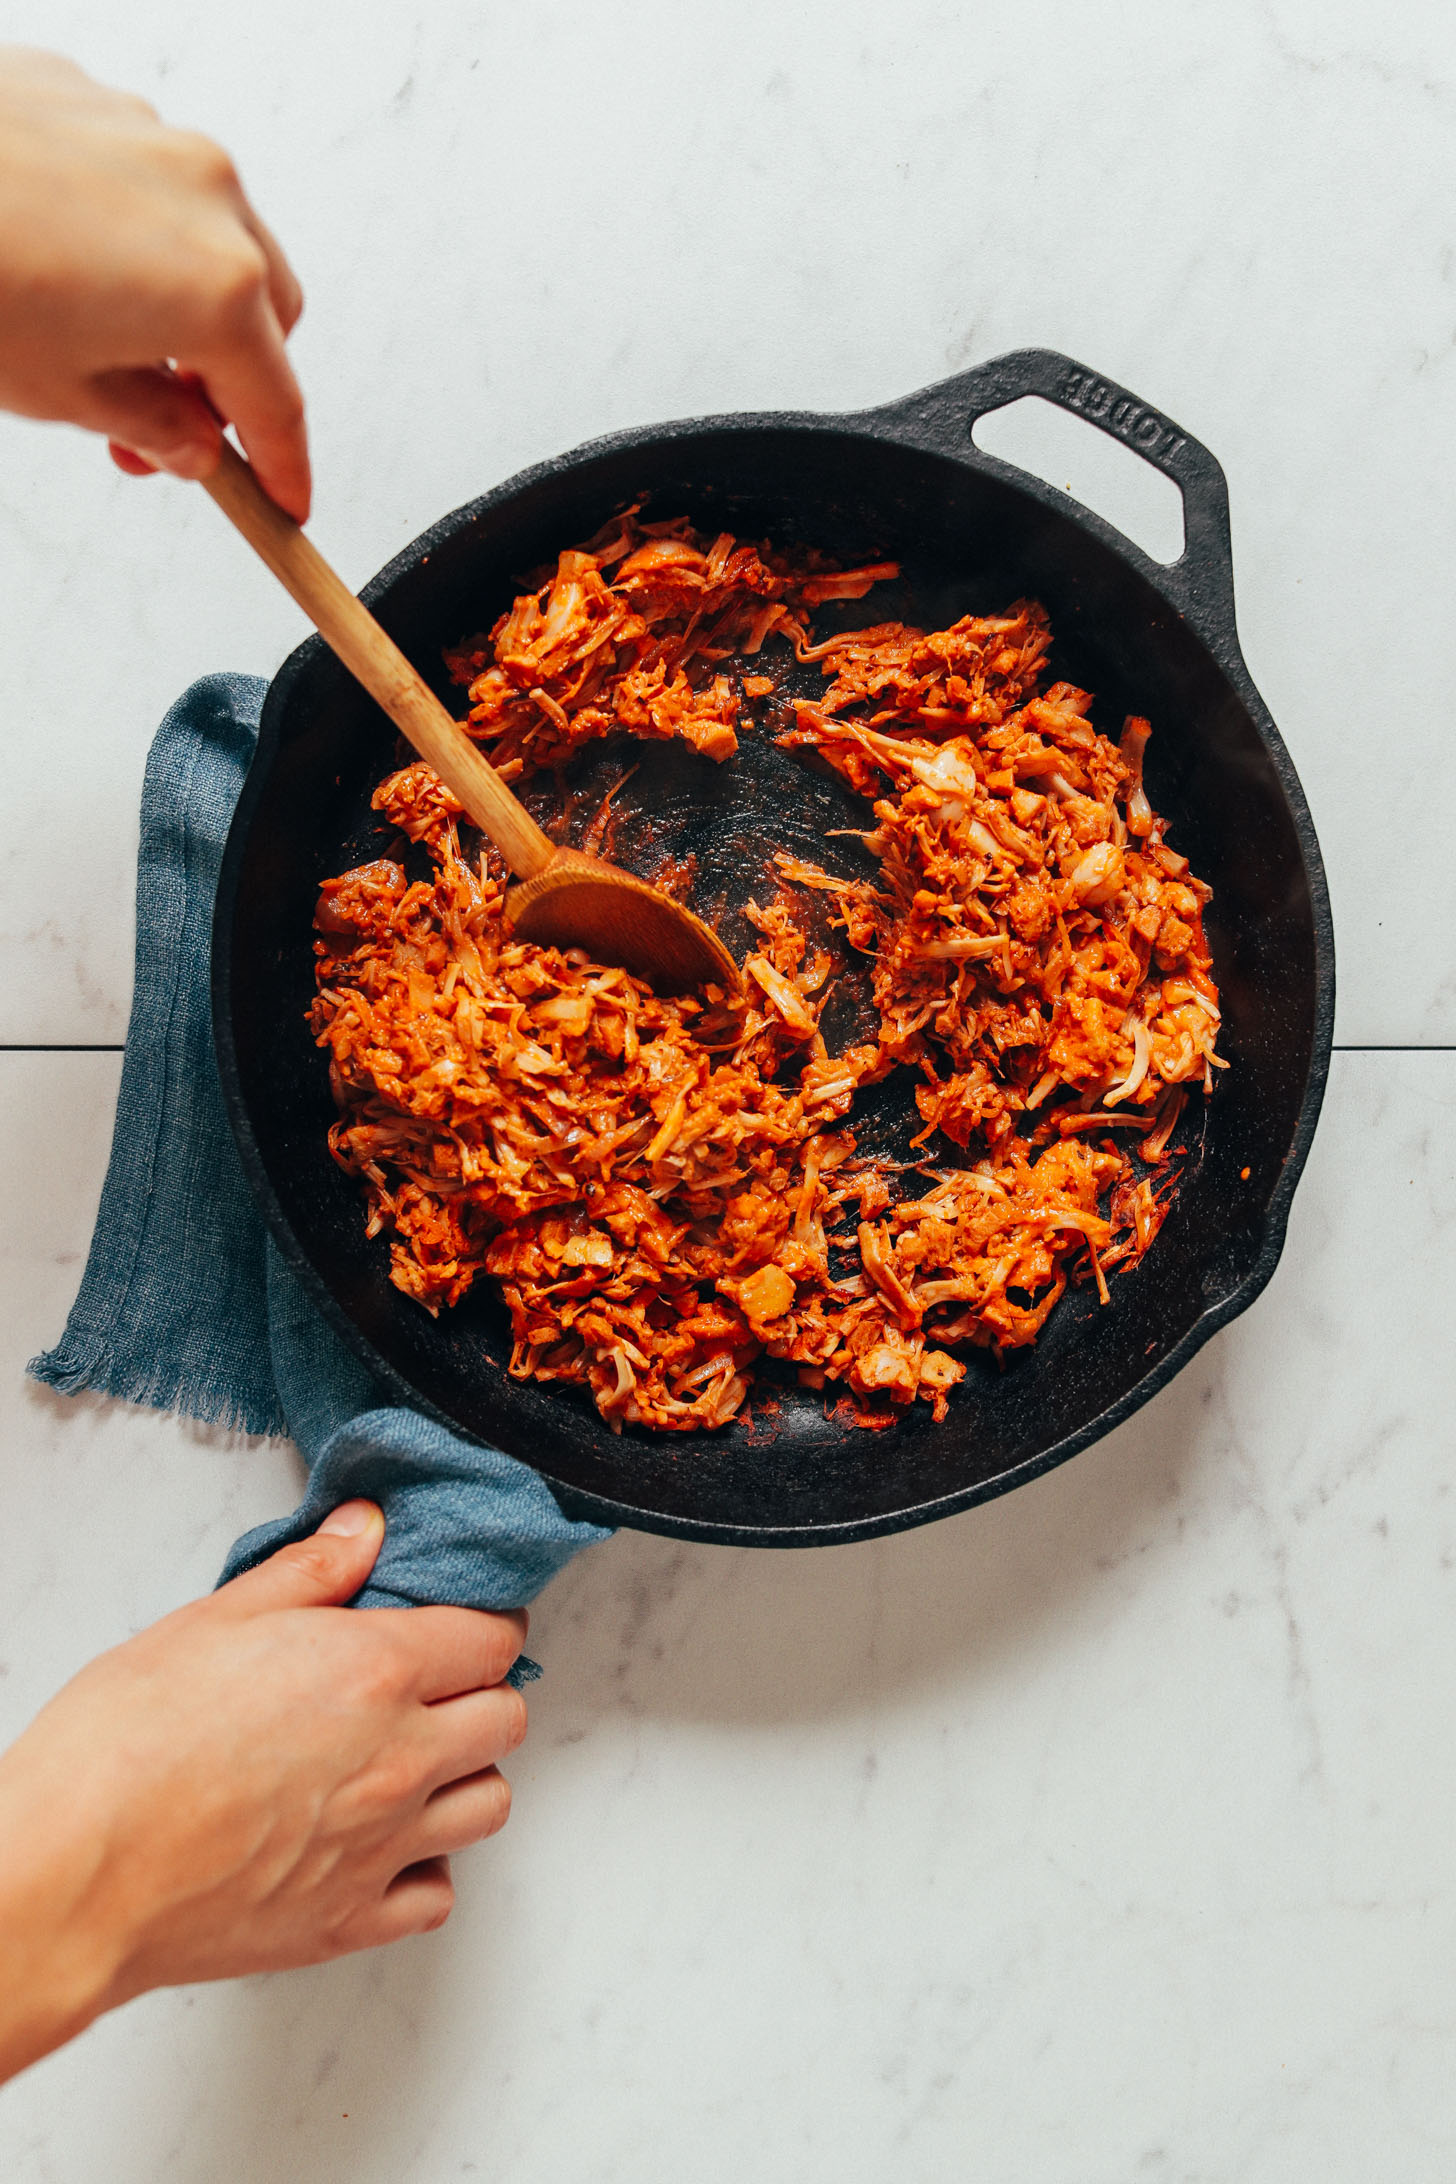 Using a wooden spoon to stir a skillet of Smoky Marinated Jackfruit